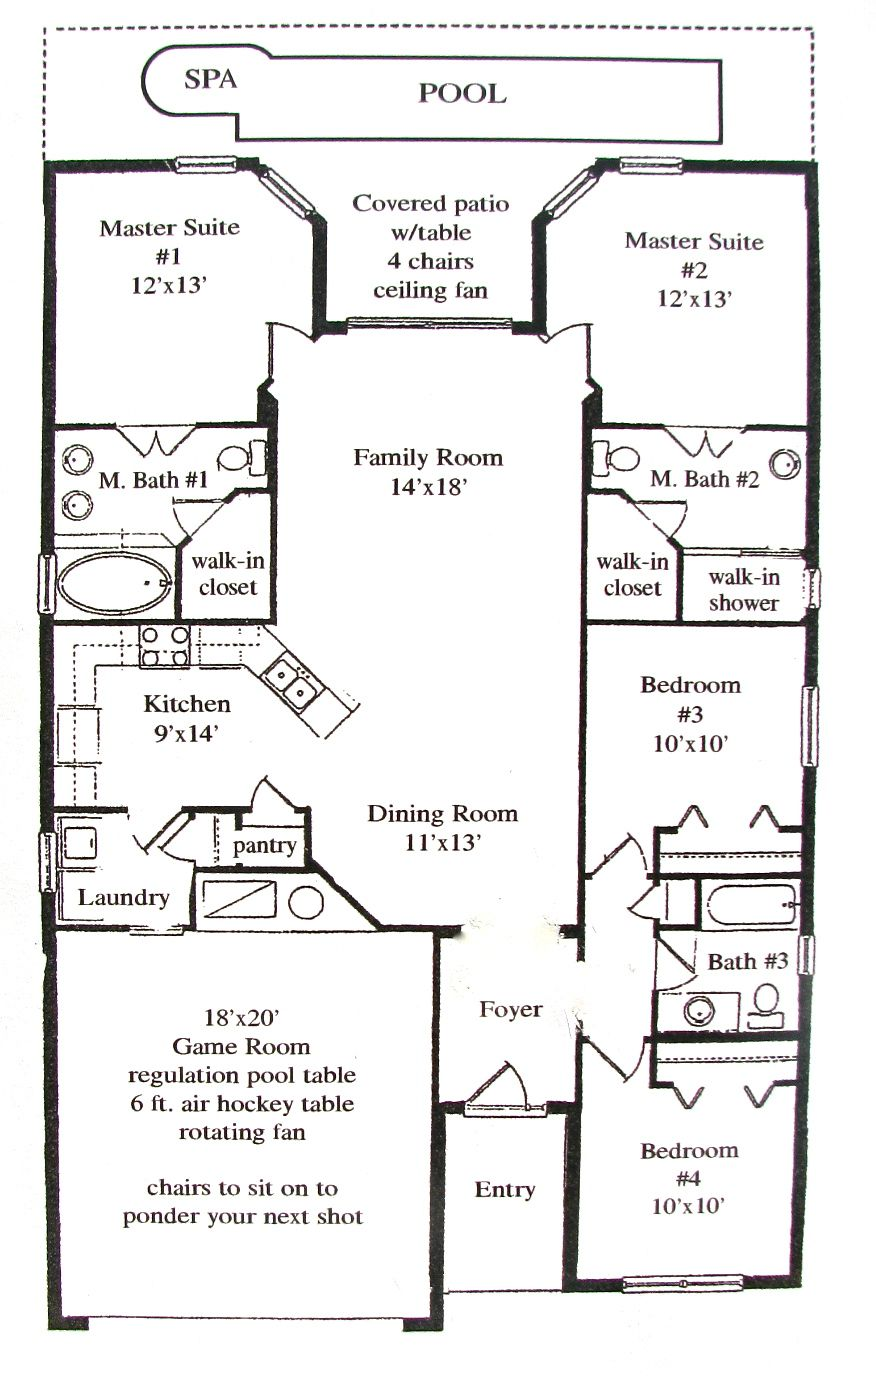 8df0f276aca0a0ed56114374ee512cc7 layout of an old roman villa google search houseplans,Roman House Floor Plan